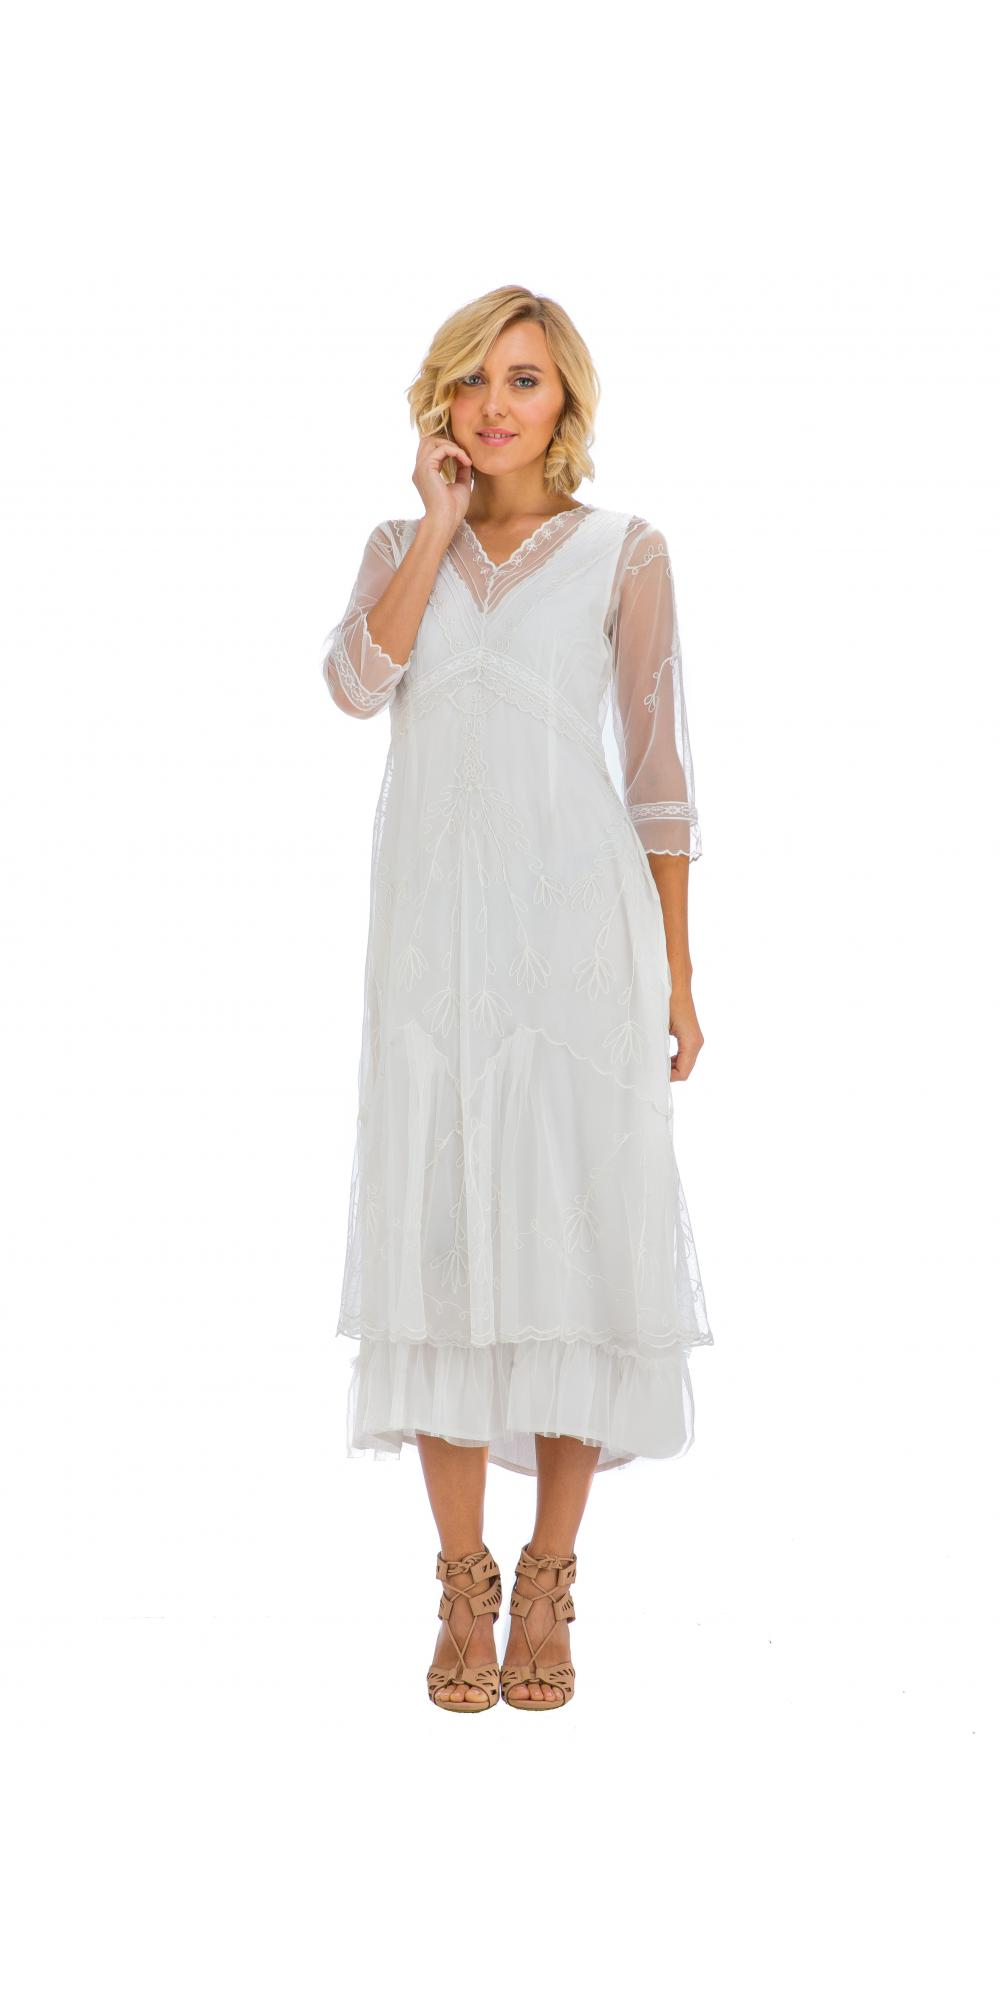 3e34e27f772d7 True Romance Nataya CL-509 Somewhere in Time Dress in Ivory. Loading zoom